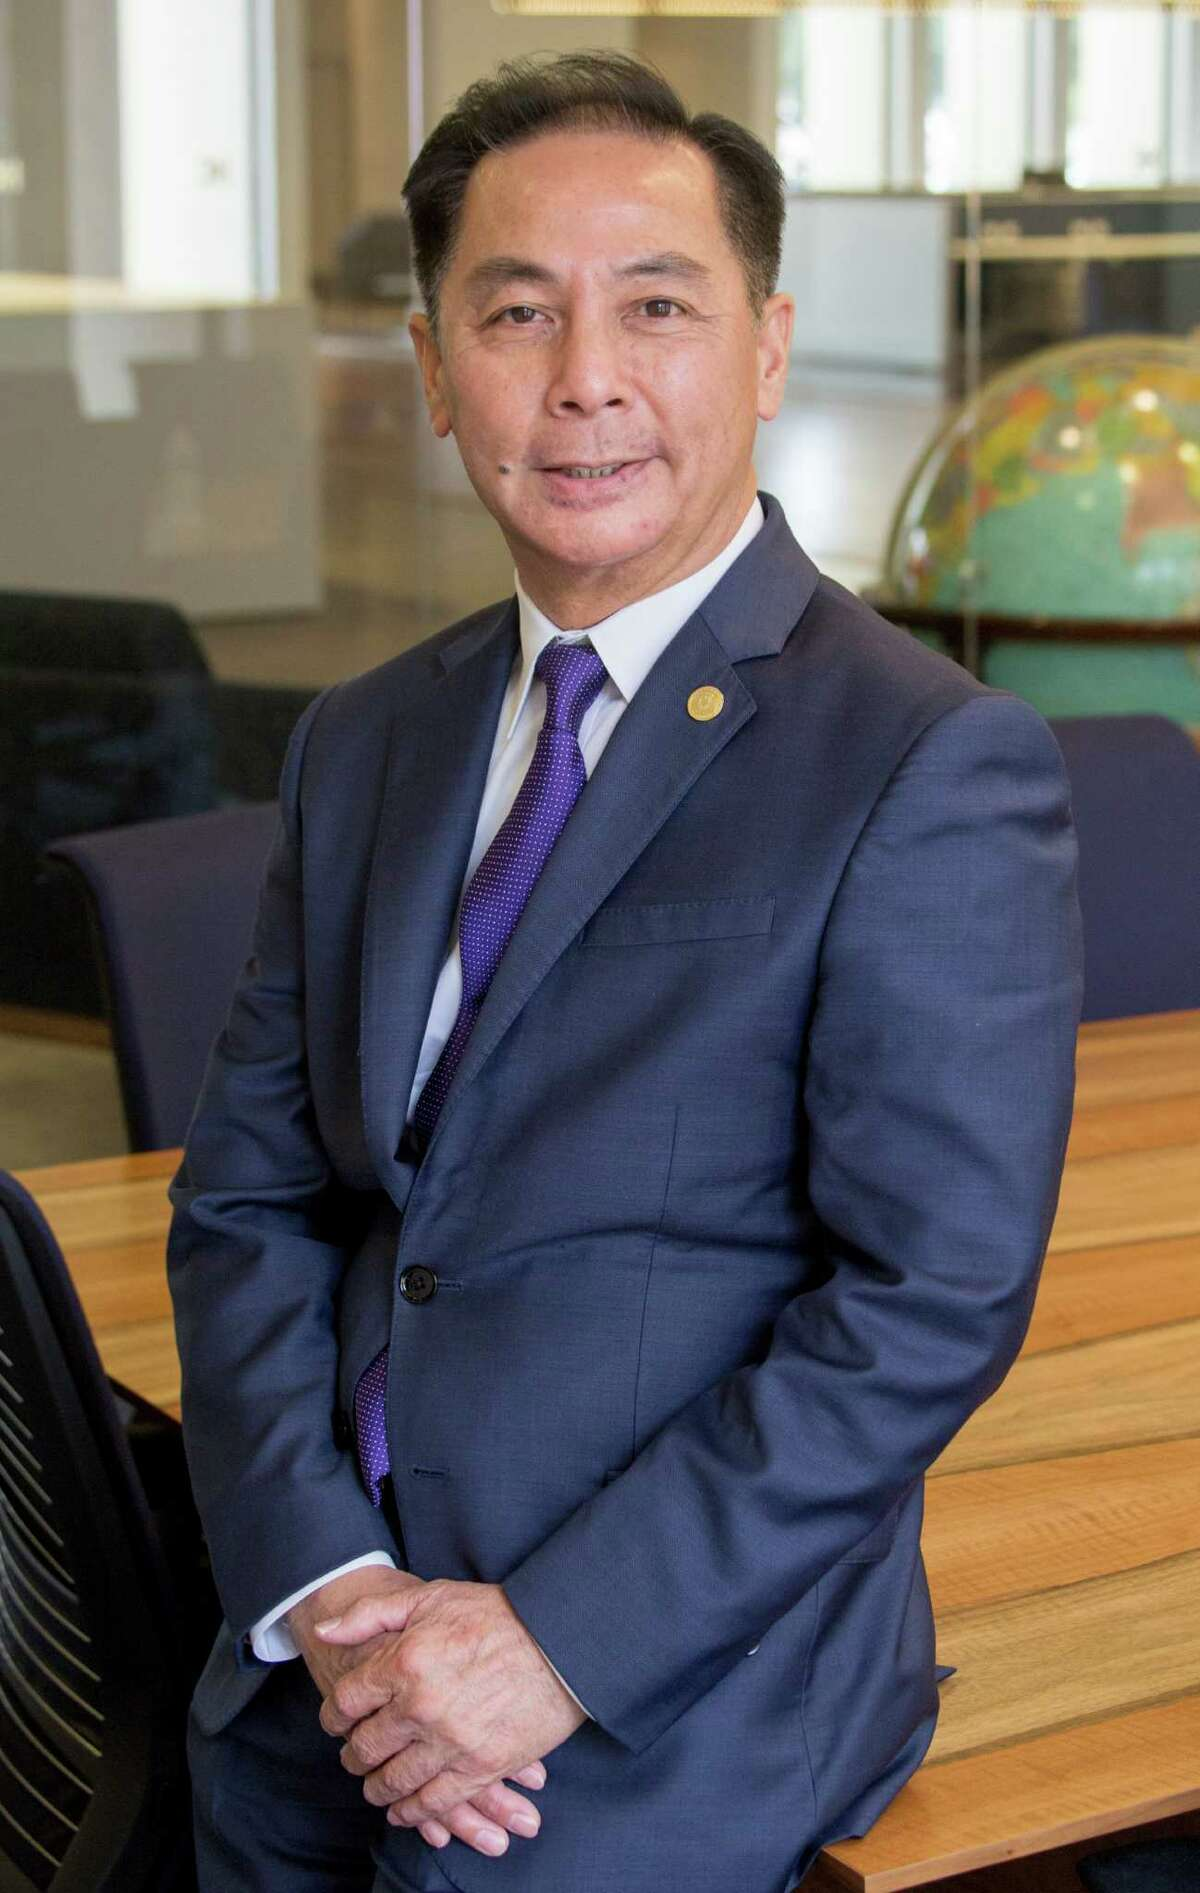 Hubert Vo is a candidate for Texas House of Representatives, District 149 shown Thursday August 25, 2016. (JeremyCarter/ Houston Chronicle) 00068544A